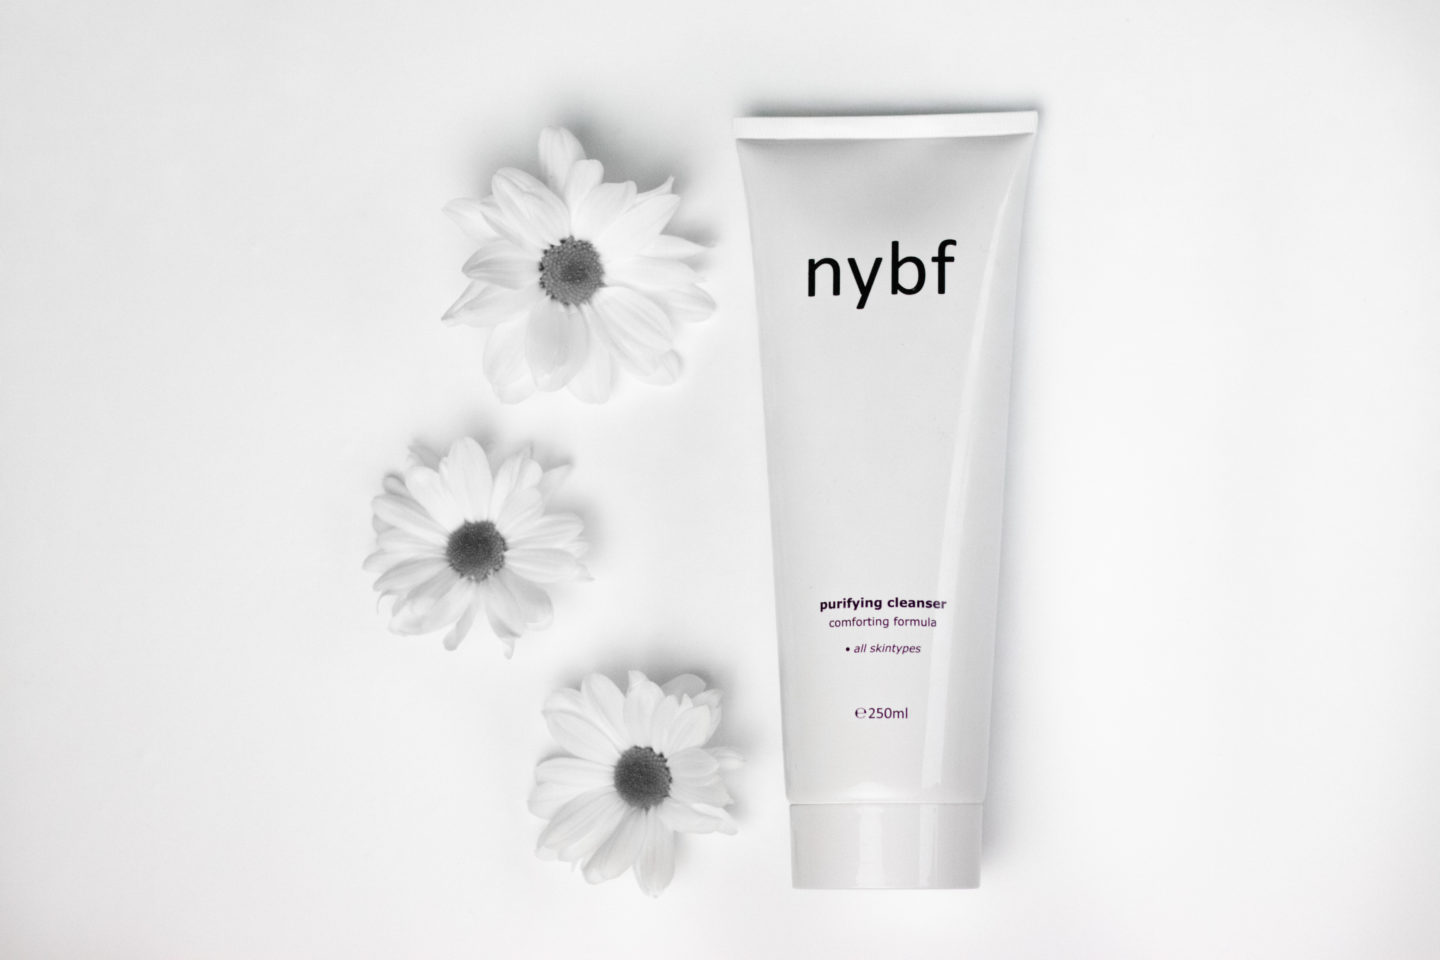 Review | NYBF The Purifying cleanser